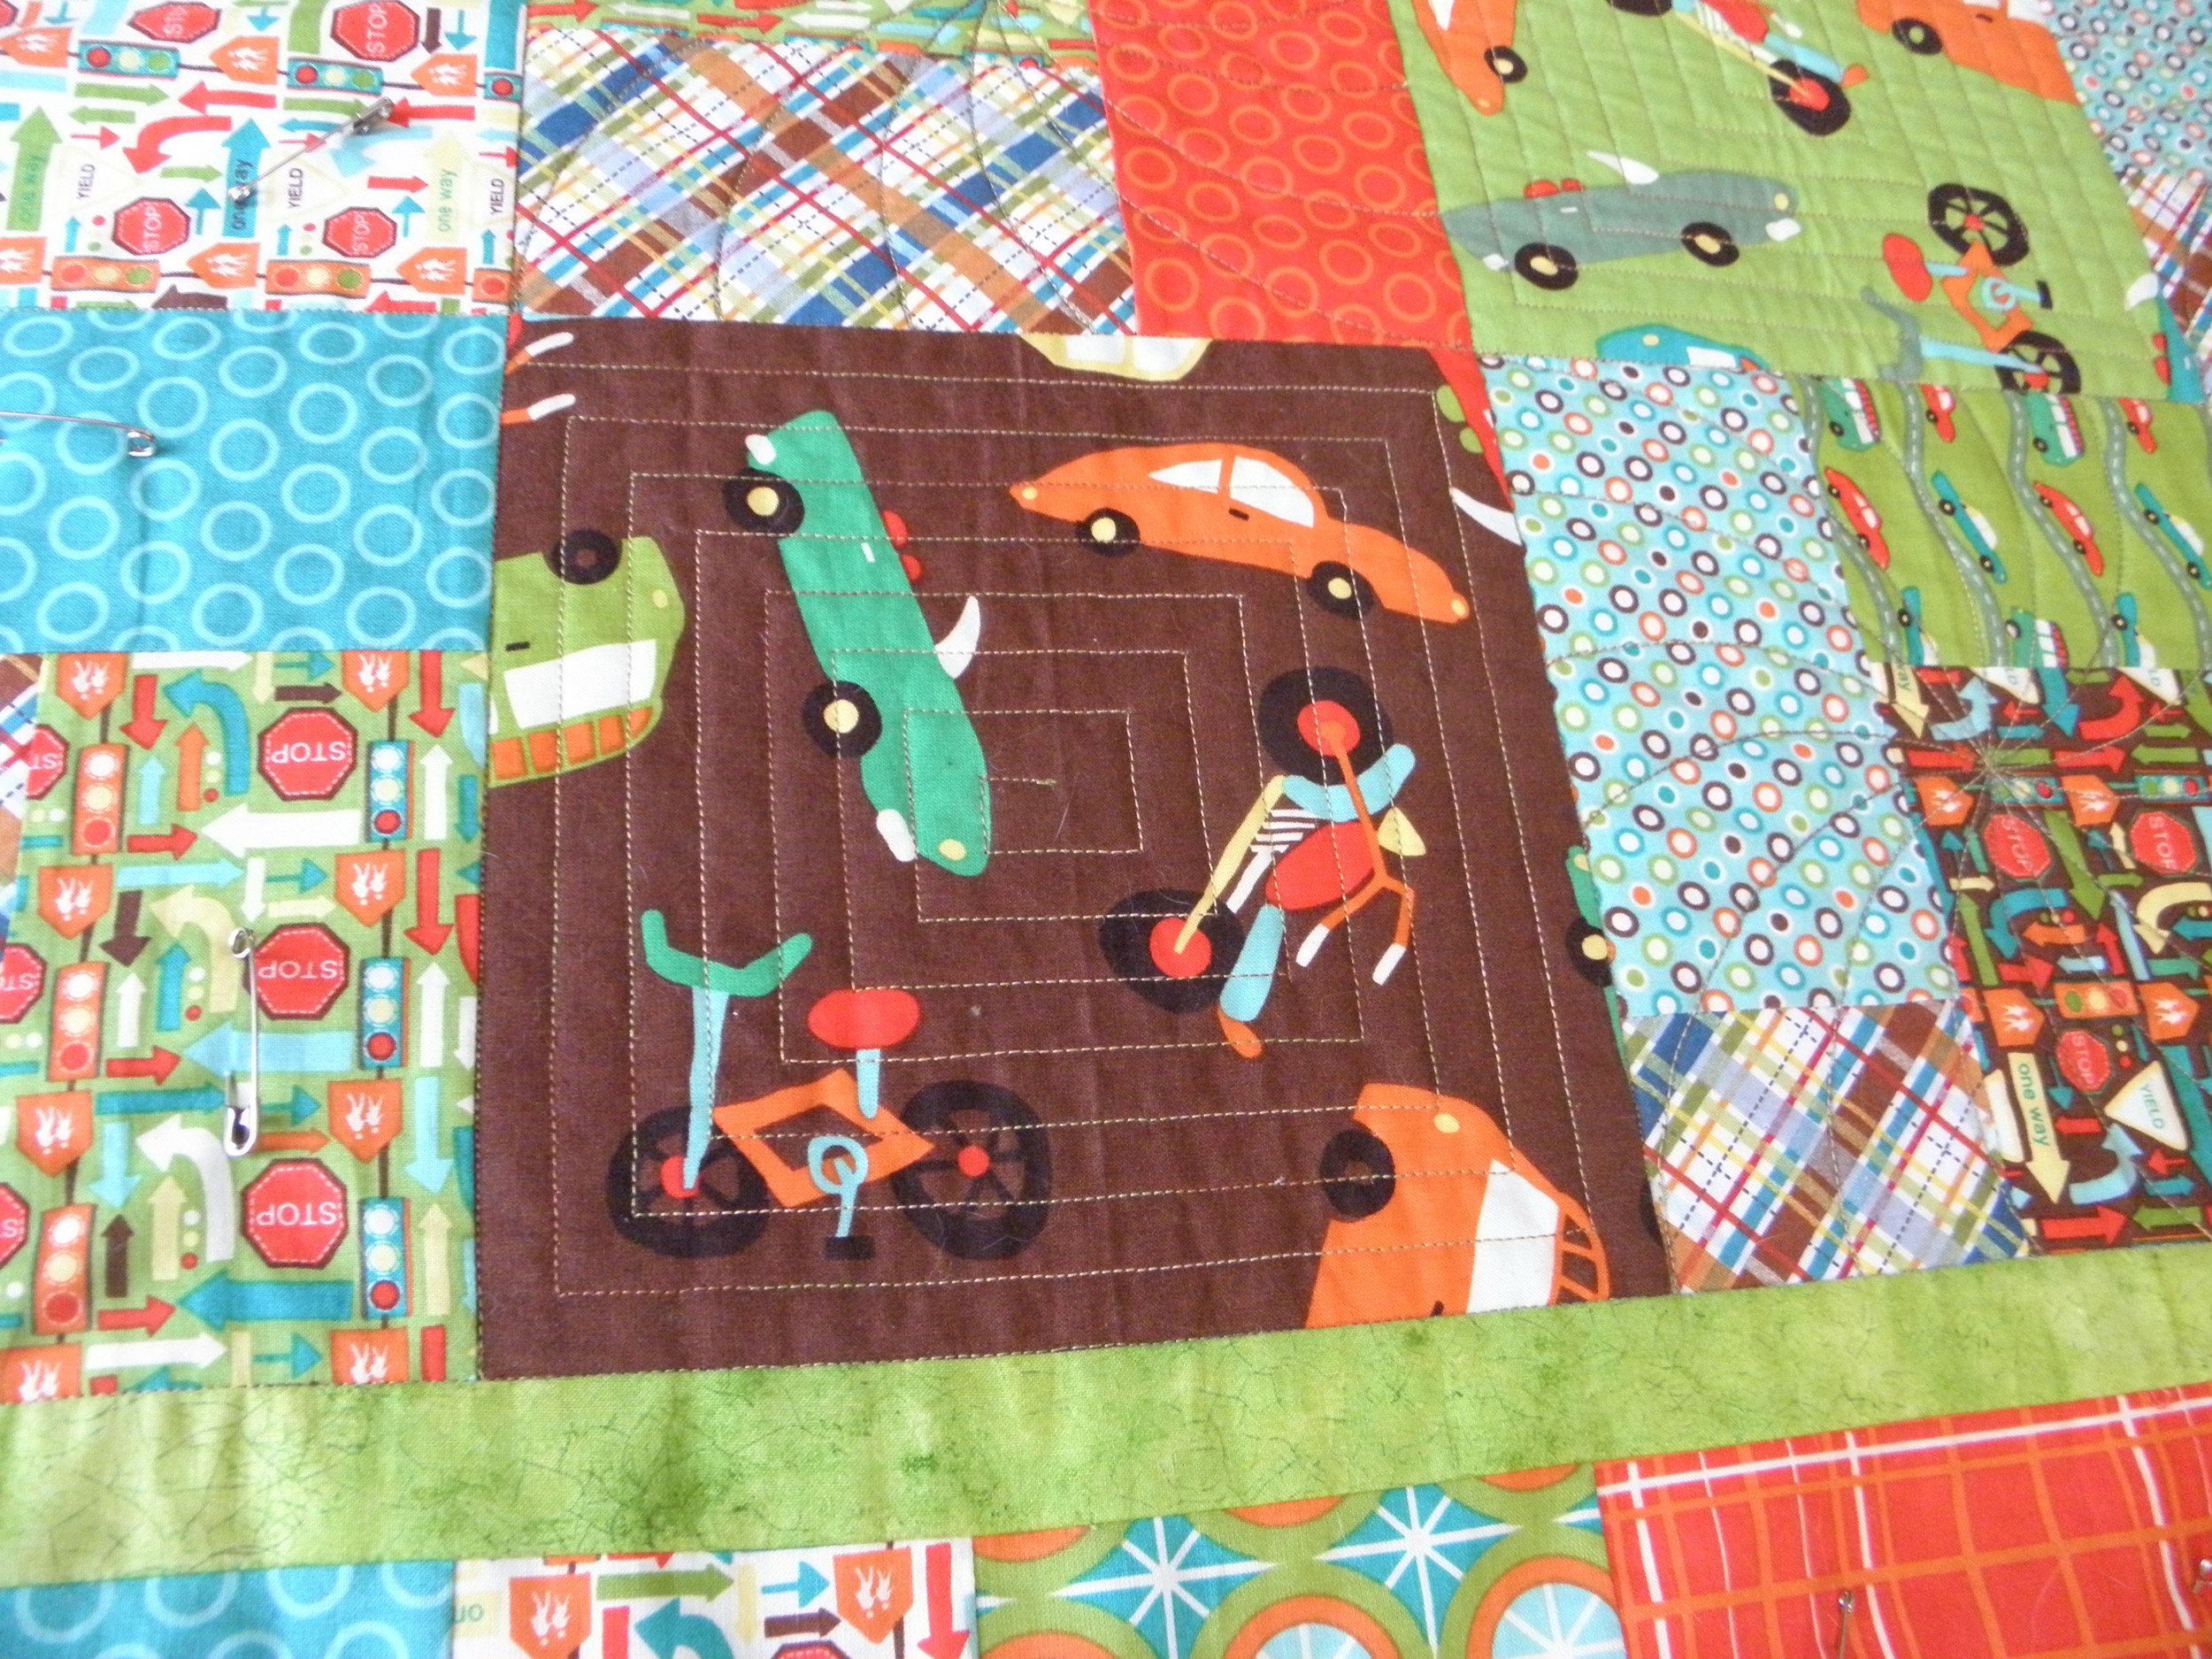 The quilting on the solid square blocks.